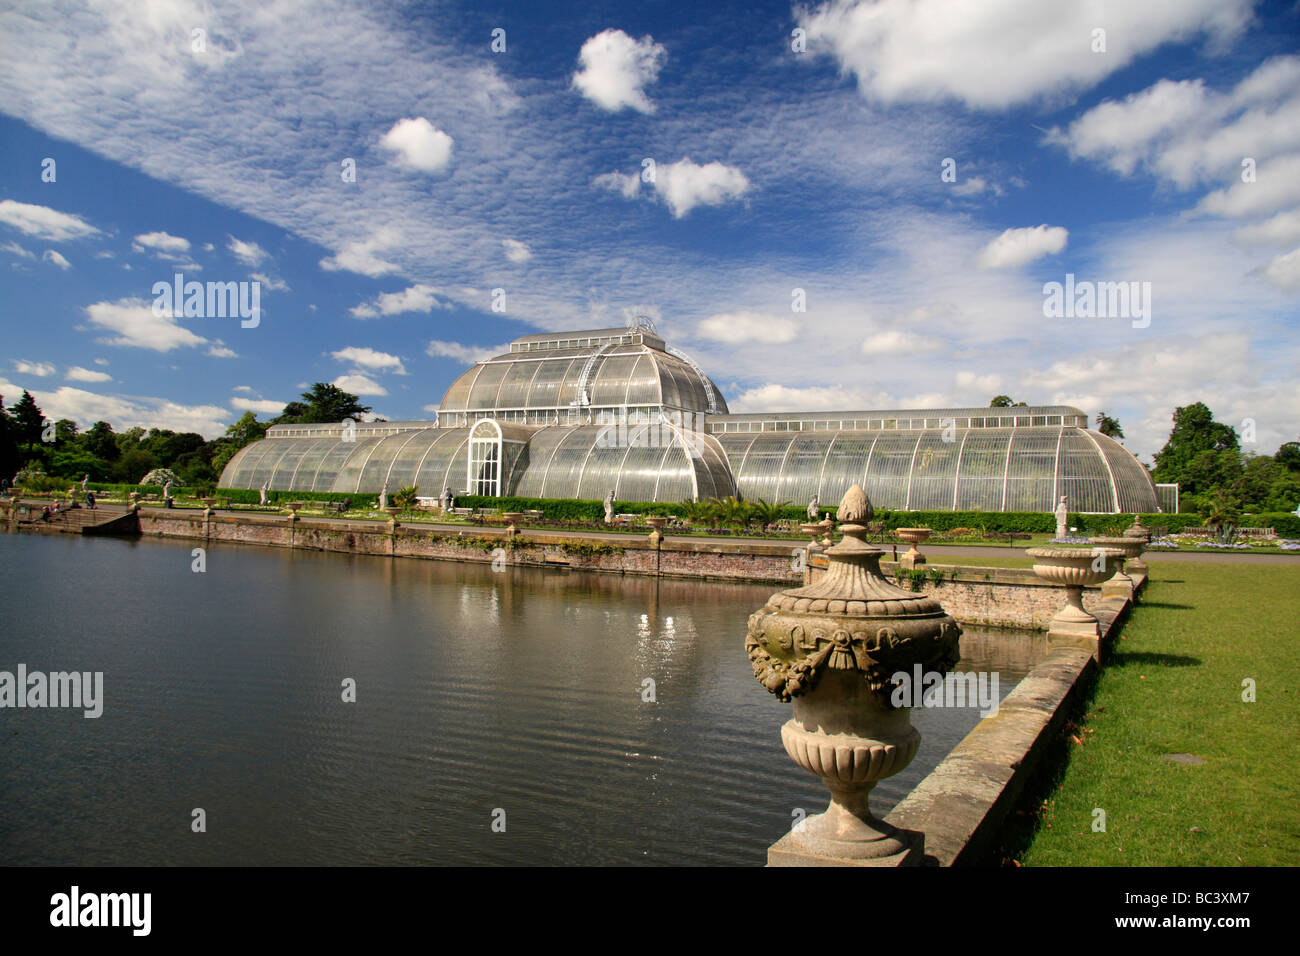 The Palm House, Palm House Parterre and lake in The Royal Botanic Gardens, Kew, Surrey, England. - Stock Image